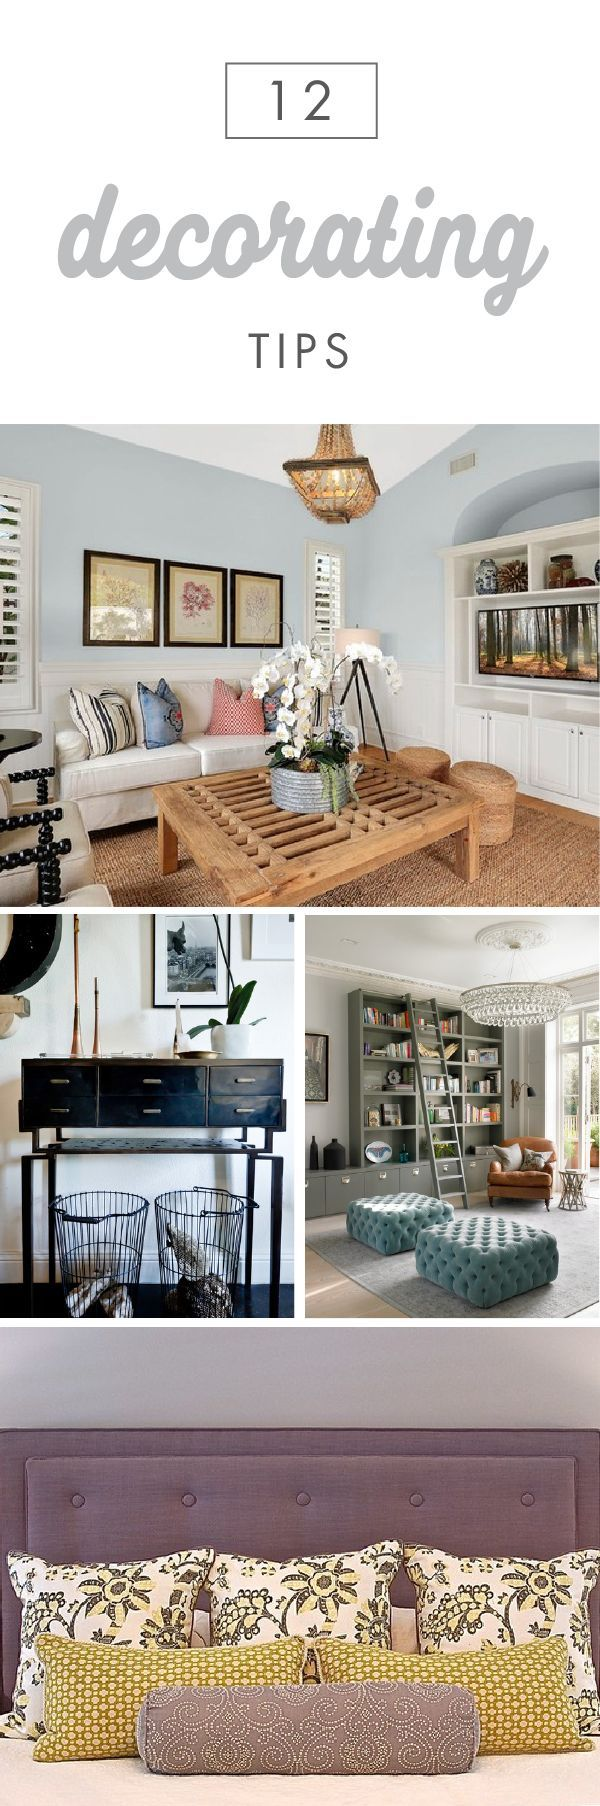 Sometimes you just need a home decor refresh. This collection of 12 Decorating Tips from Jo-Ann has all the inspiration and helpful ideas you need to transform your space into the home of your dreams. Plus, these styling ideas are just in time for holiday houseguests.